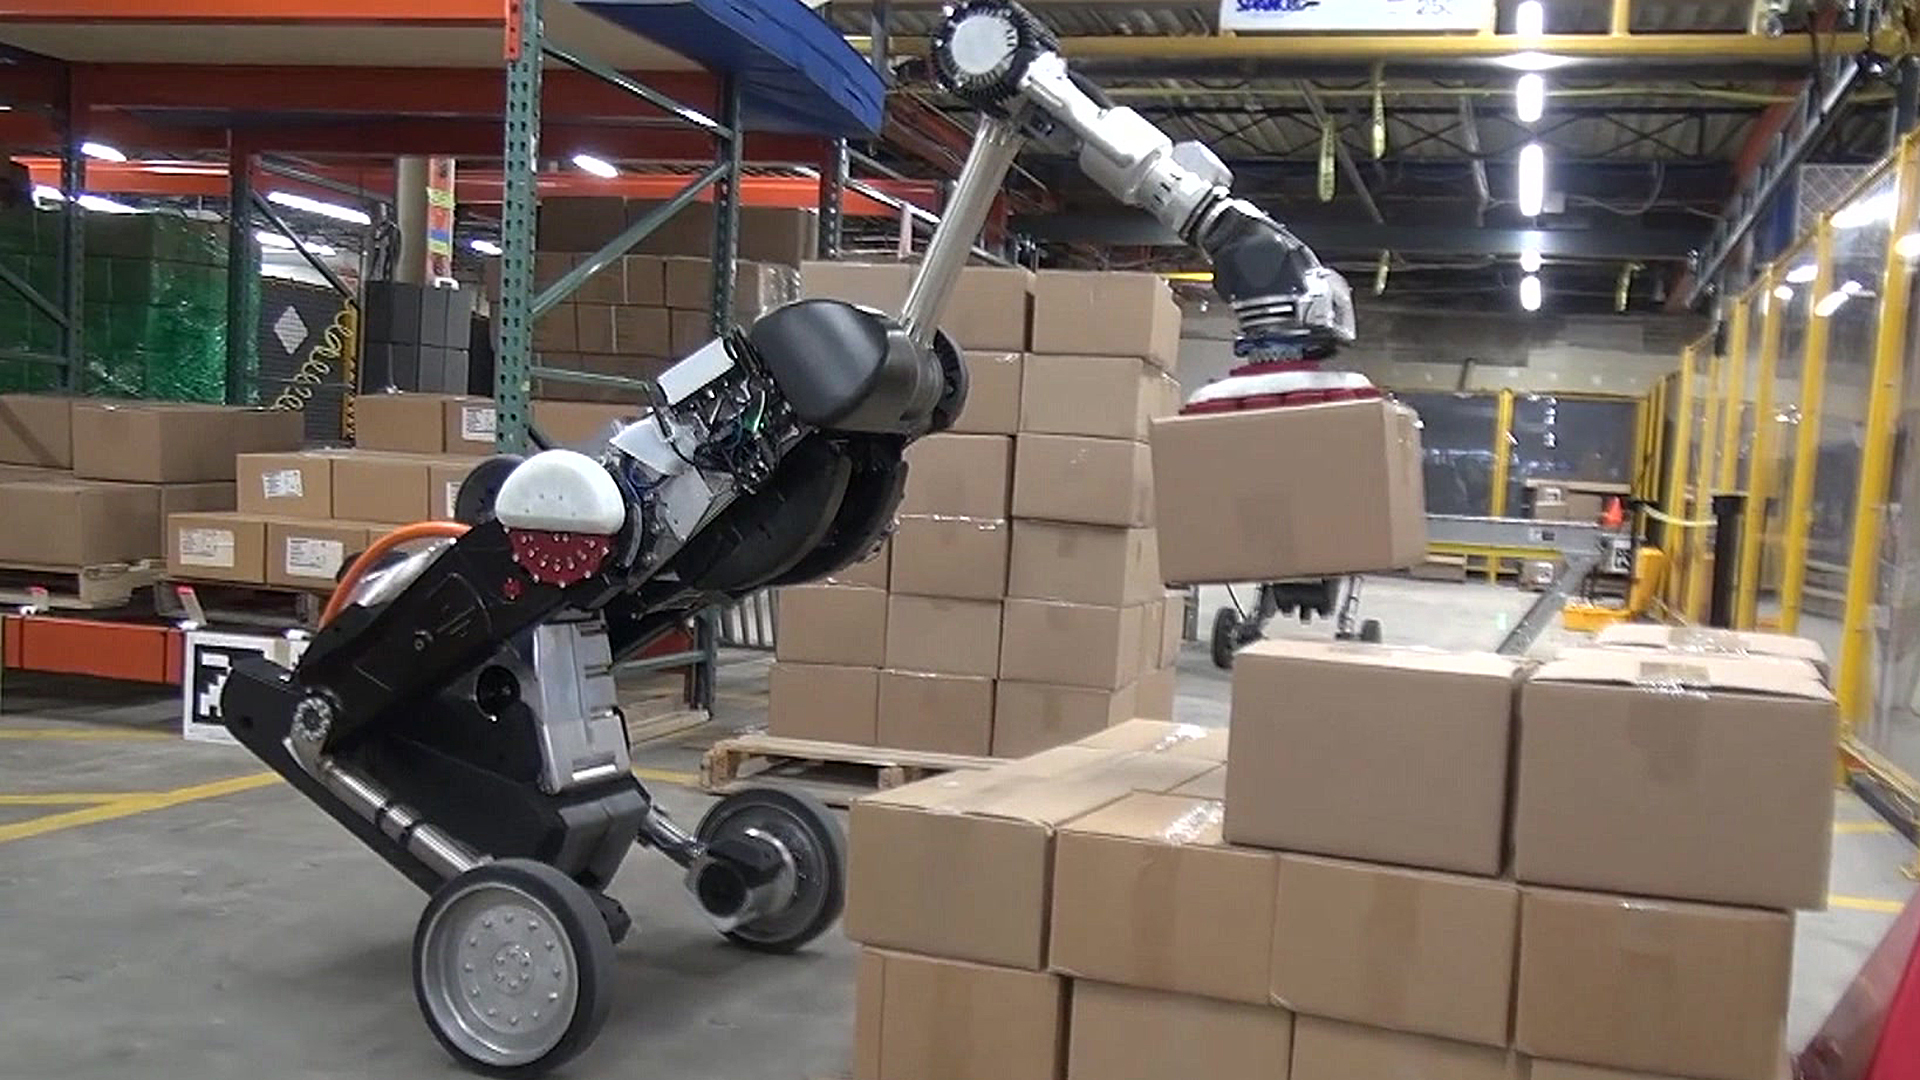 Box lifting warehouse robots unveiled